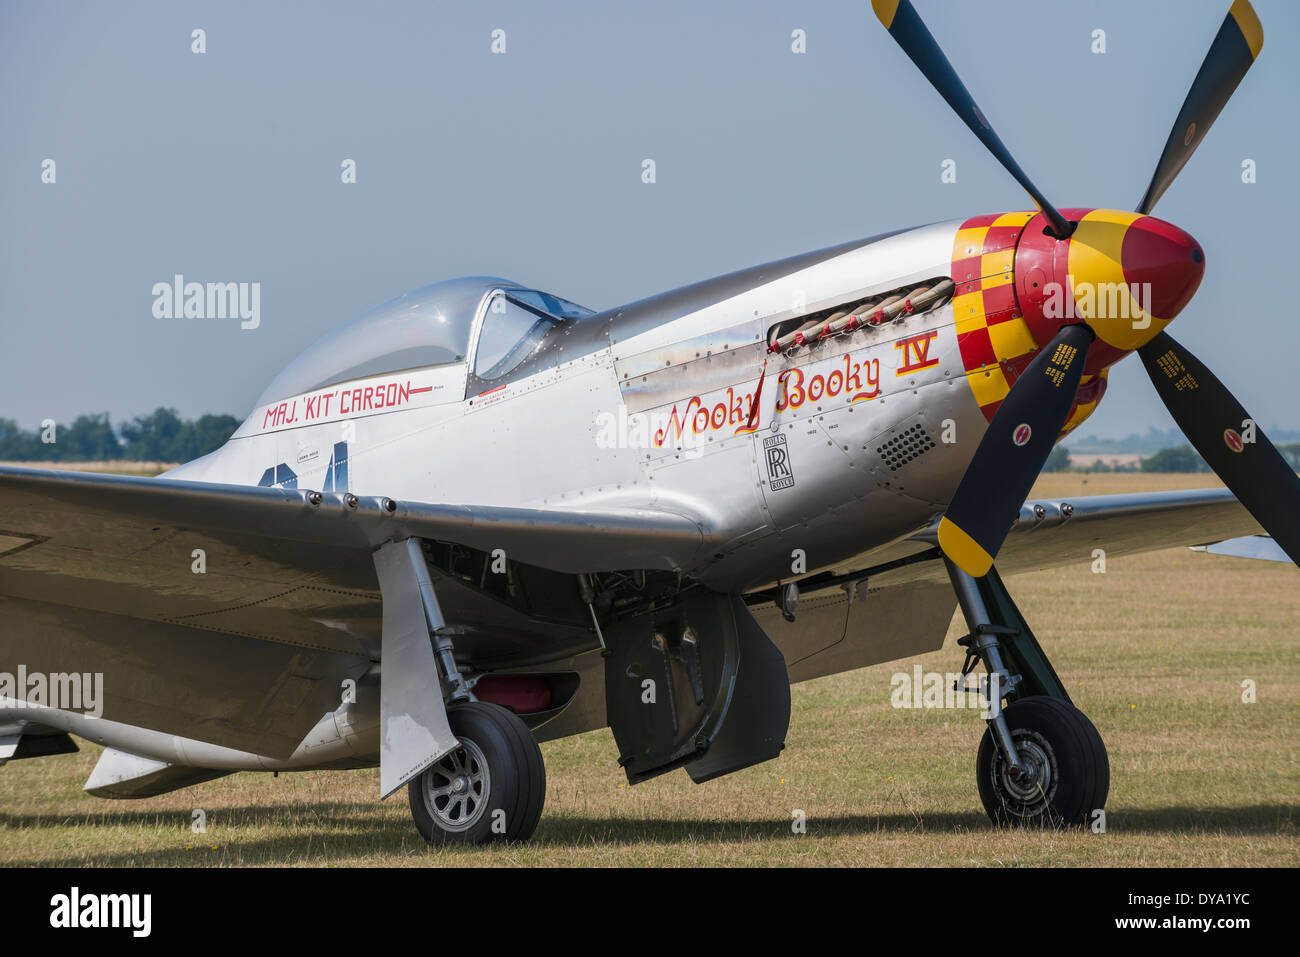 P51-D Mustang 'Nooky Booky IV' at the Flying Legends Airshow, Imperial War Museum Duxford - Stock Image